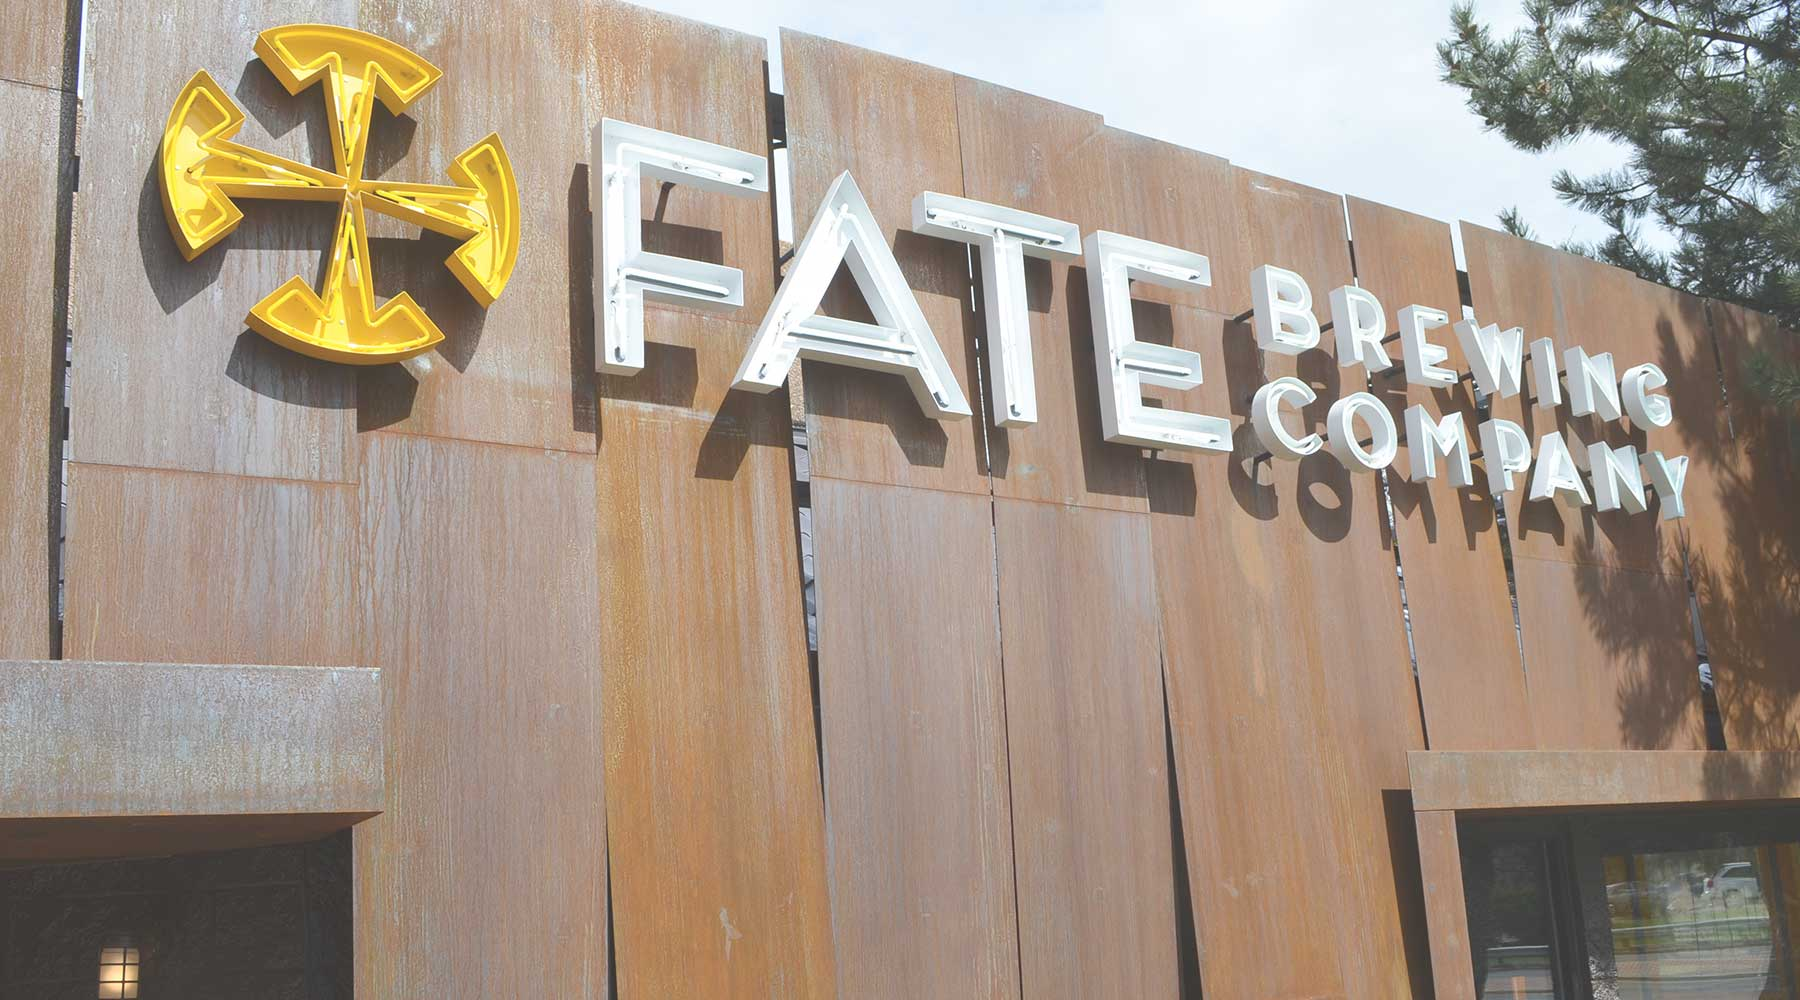 FATE Brewing Company | Just Wine